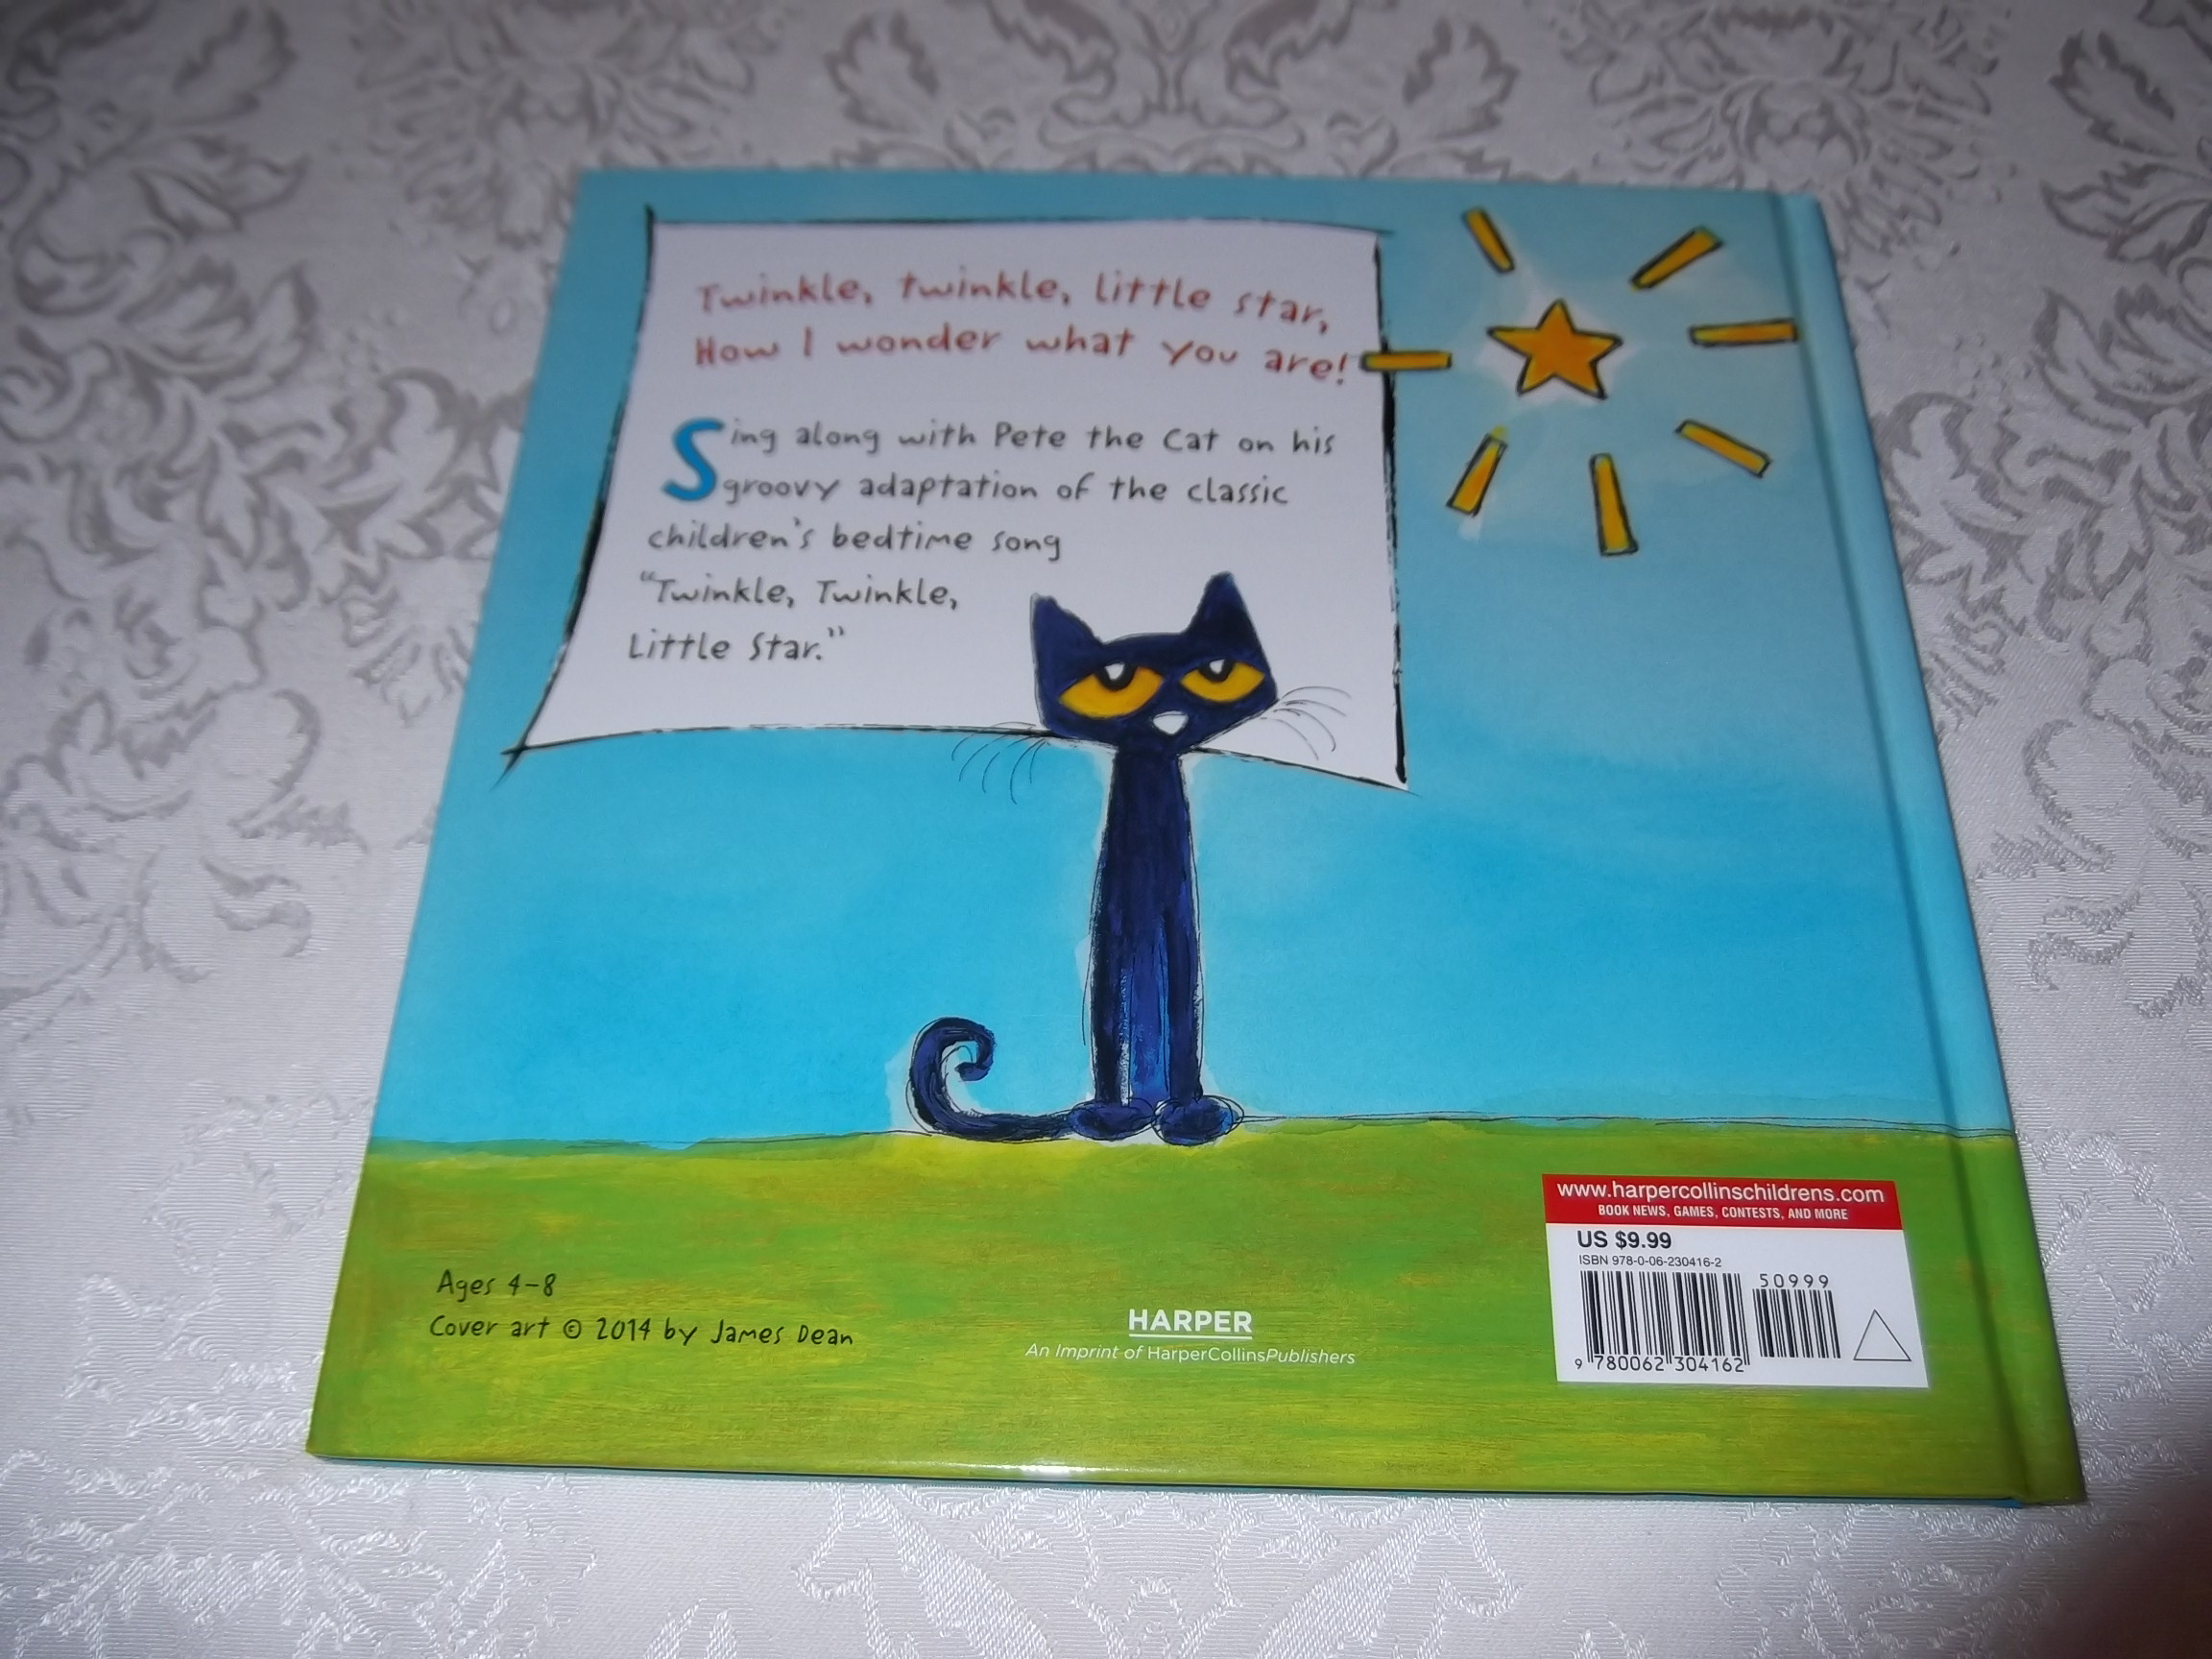 Image 15 of Pete the Cat Twinkle, Twinkle, Little Star James Dean Brand New HC